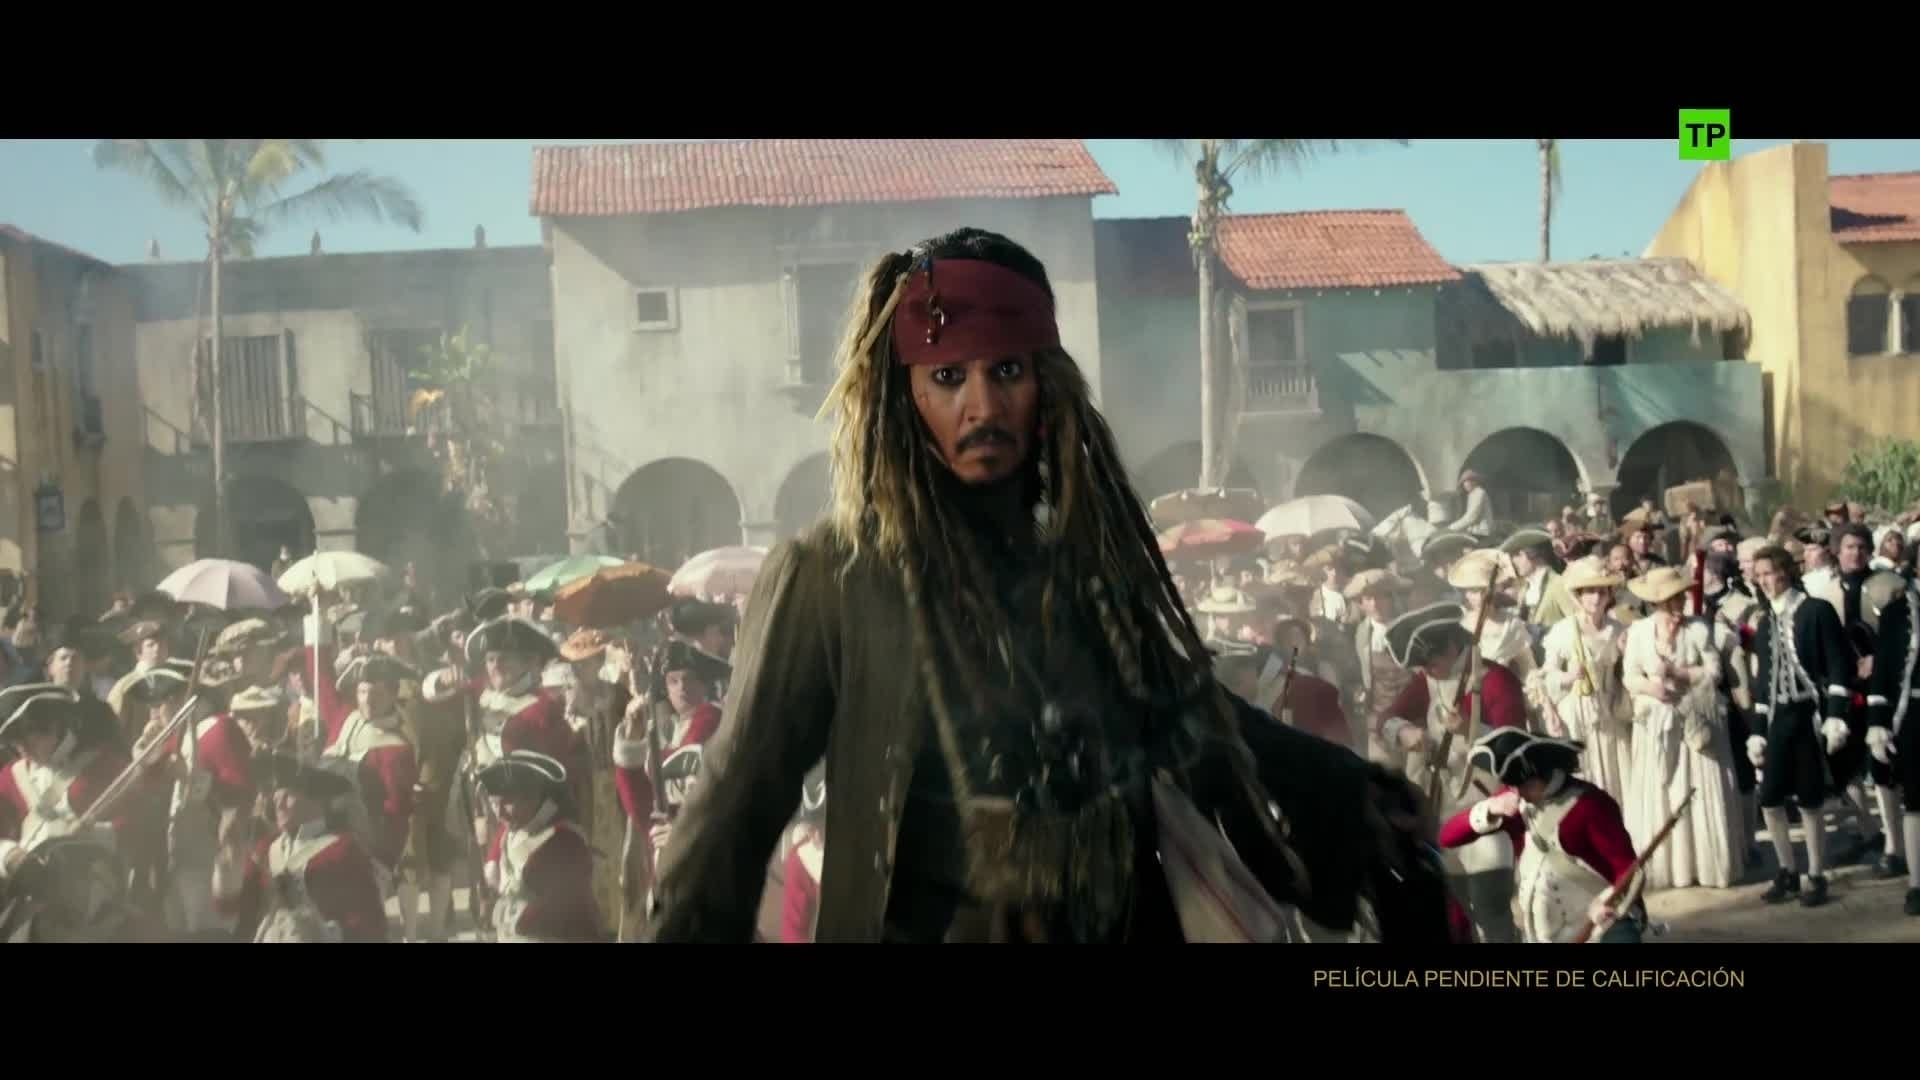 Piratas del Caribe: La venganza de Salazar - Making of